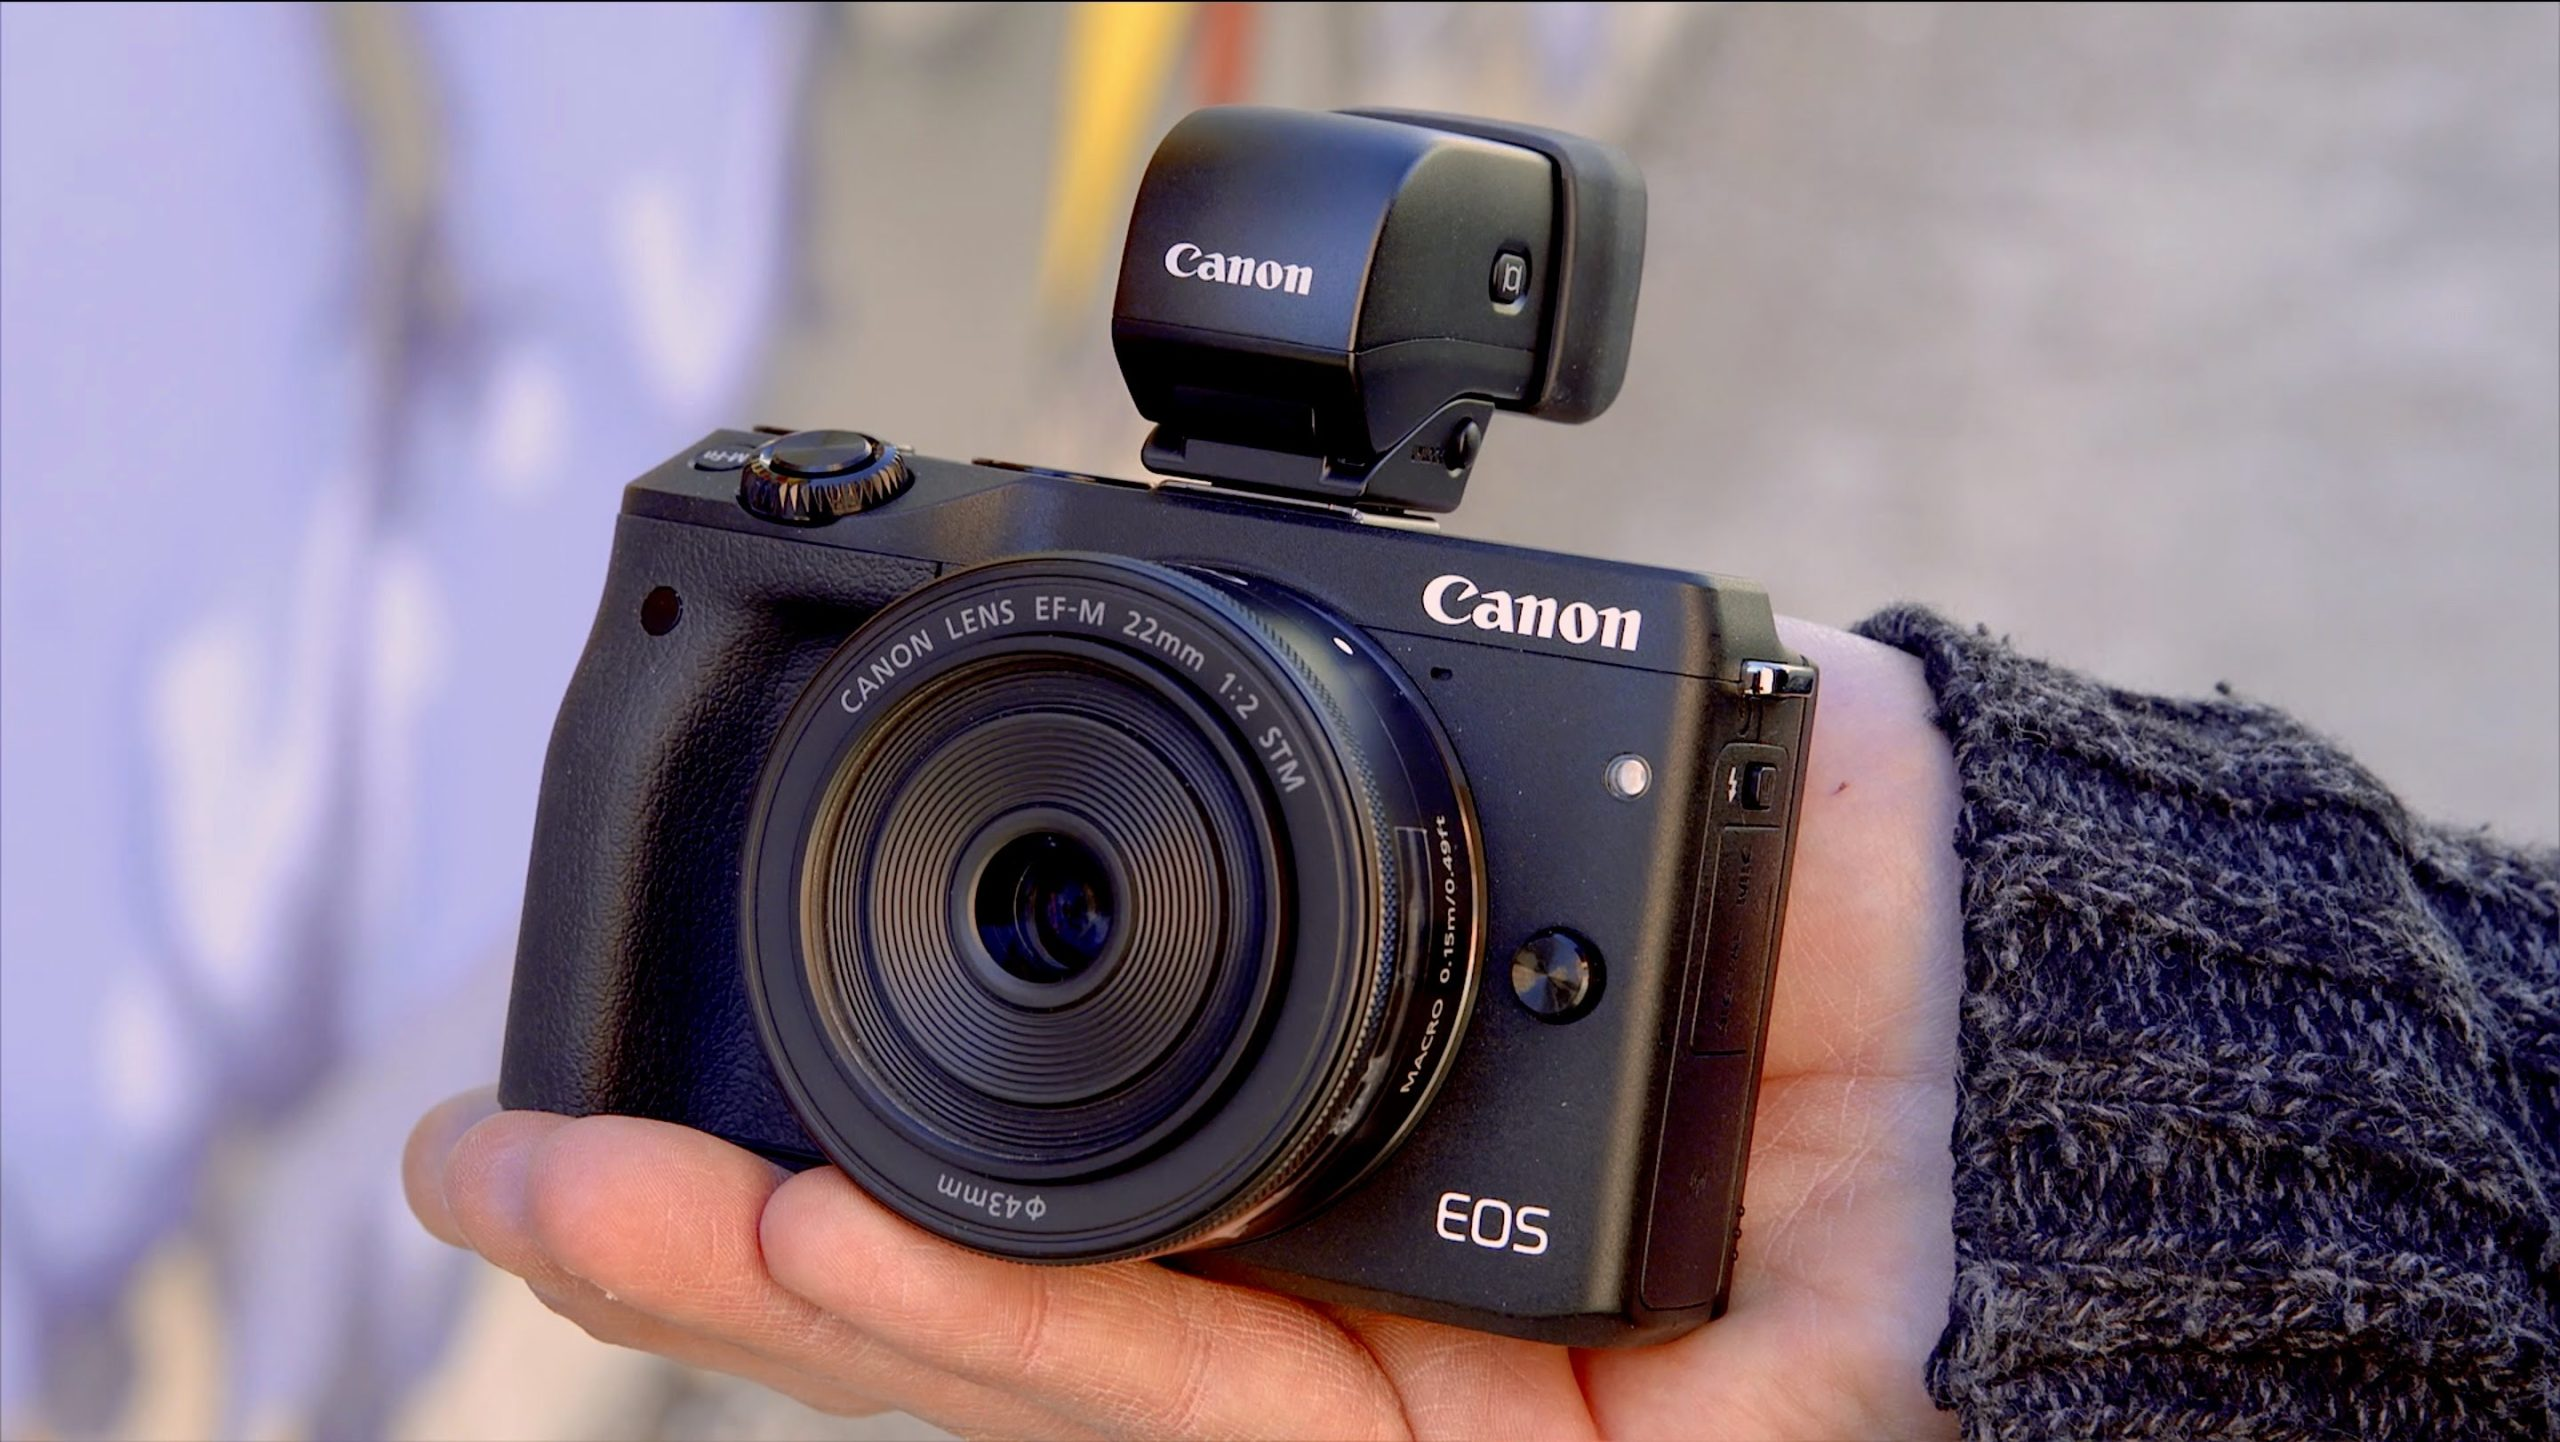 canon eos m3 hands on review. Black Bedroom Furniture Sets. Home Design Ideas